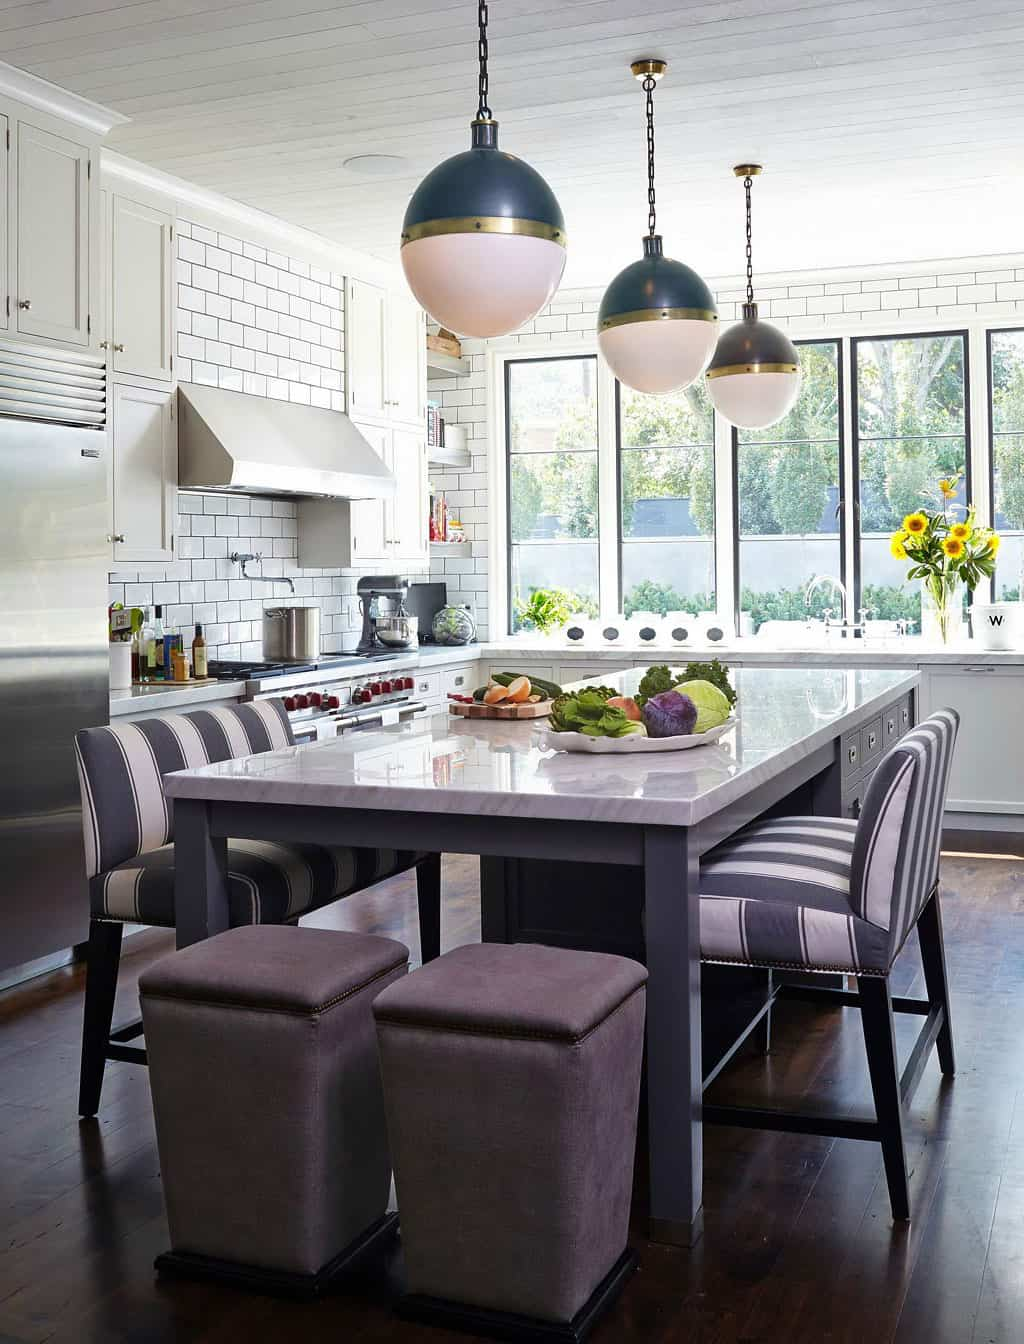 White subway tile kitchen designs are incredibly universal urban view in gallery compare these two amazingly similar but different kitchens dailygadgetfo Images